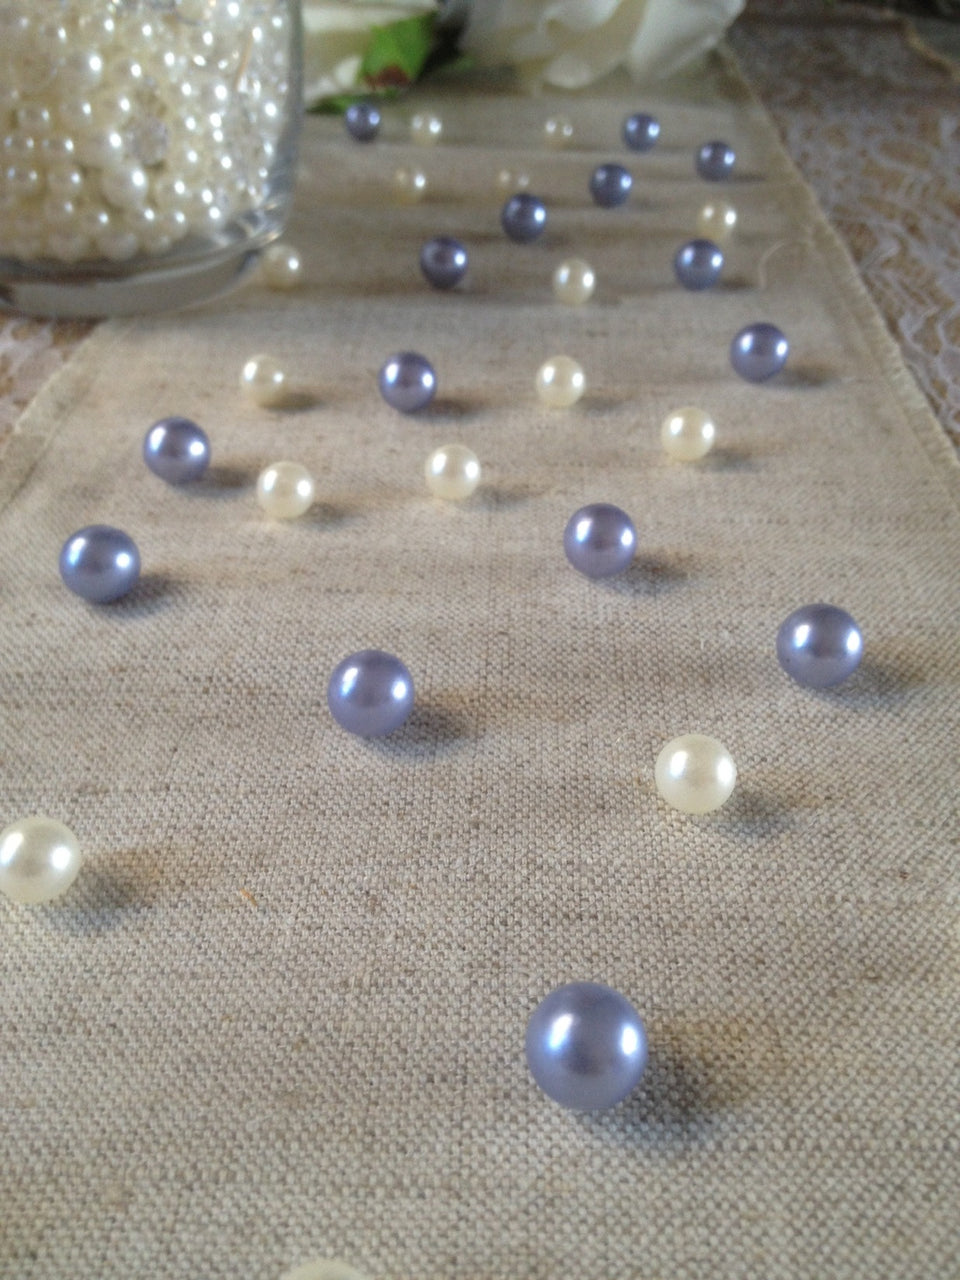 Vintage Table Pearl Scatters Lavendar and Ivory Pearls For Wedding, Parties, Special Events Decor Table Confetti